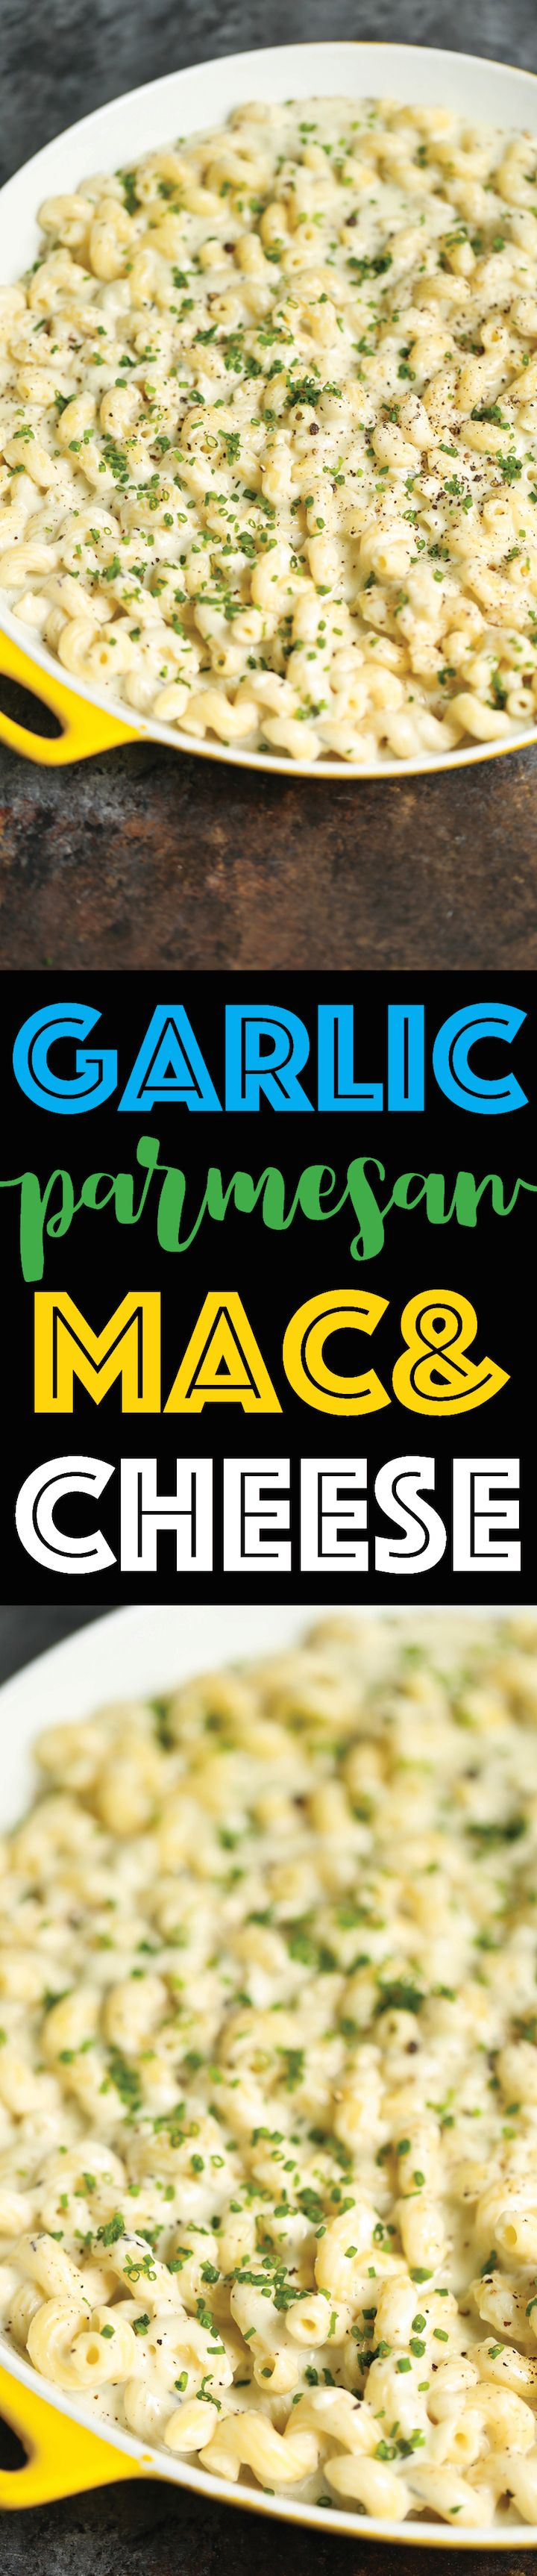 Garlic Parmesan Mac and Cheese - This will be the best mac and cheese you will ever have! With 3 different types of cheeses and the creamiest sauce EVER!!!